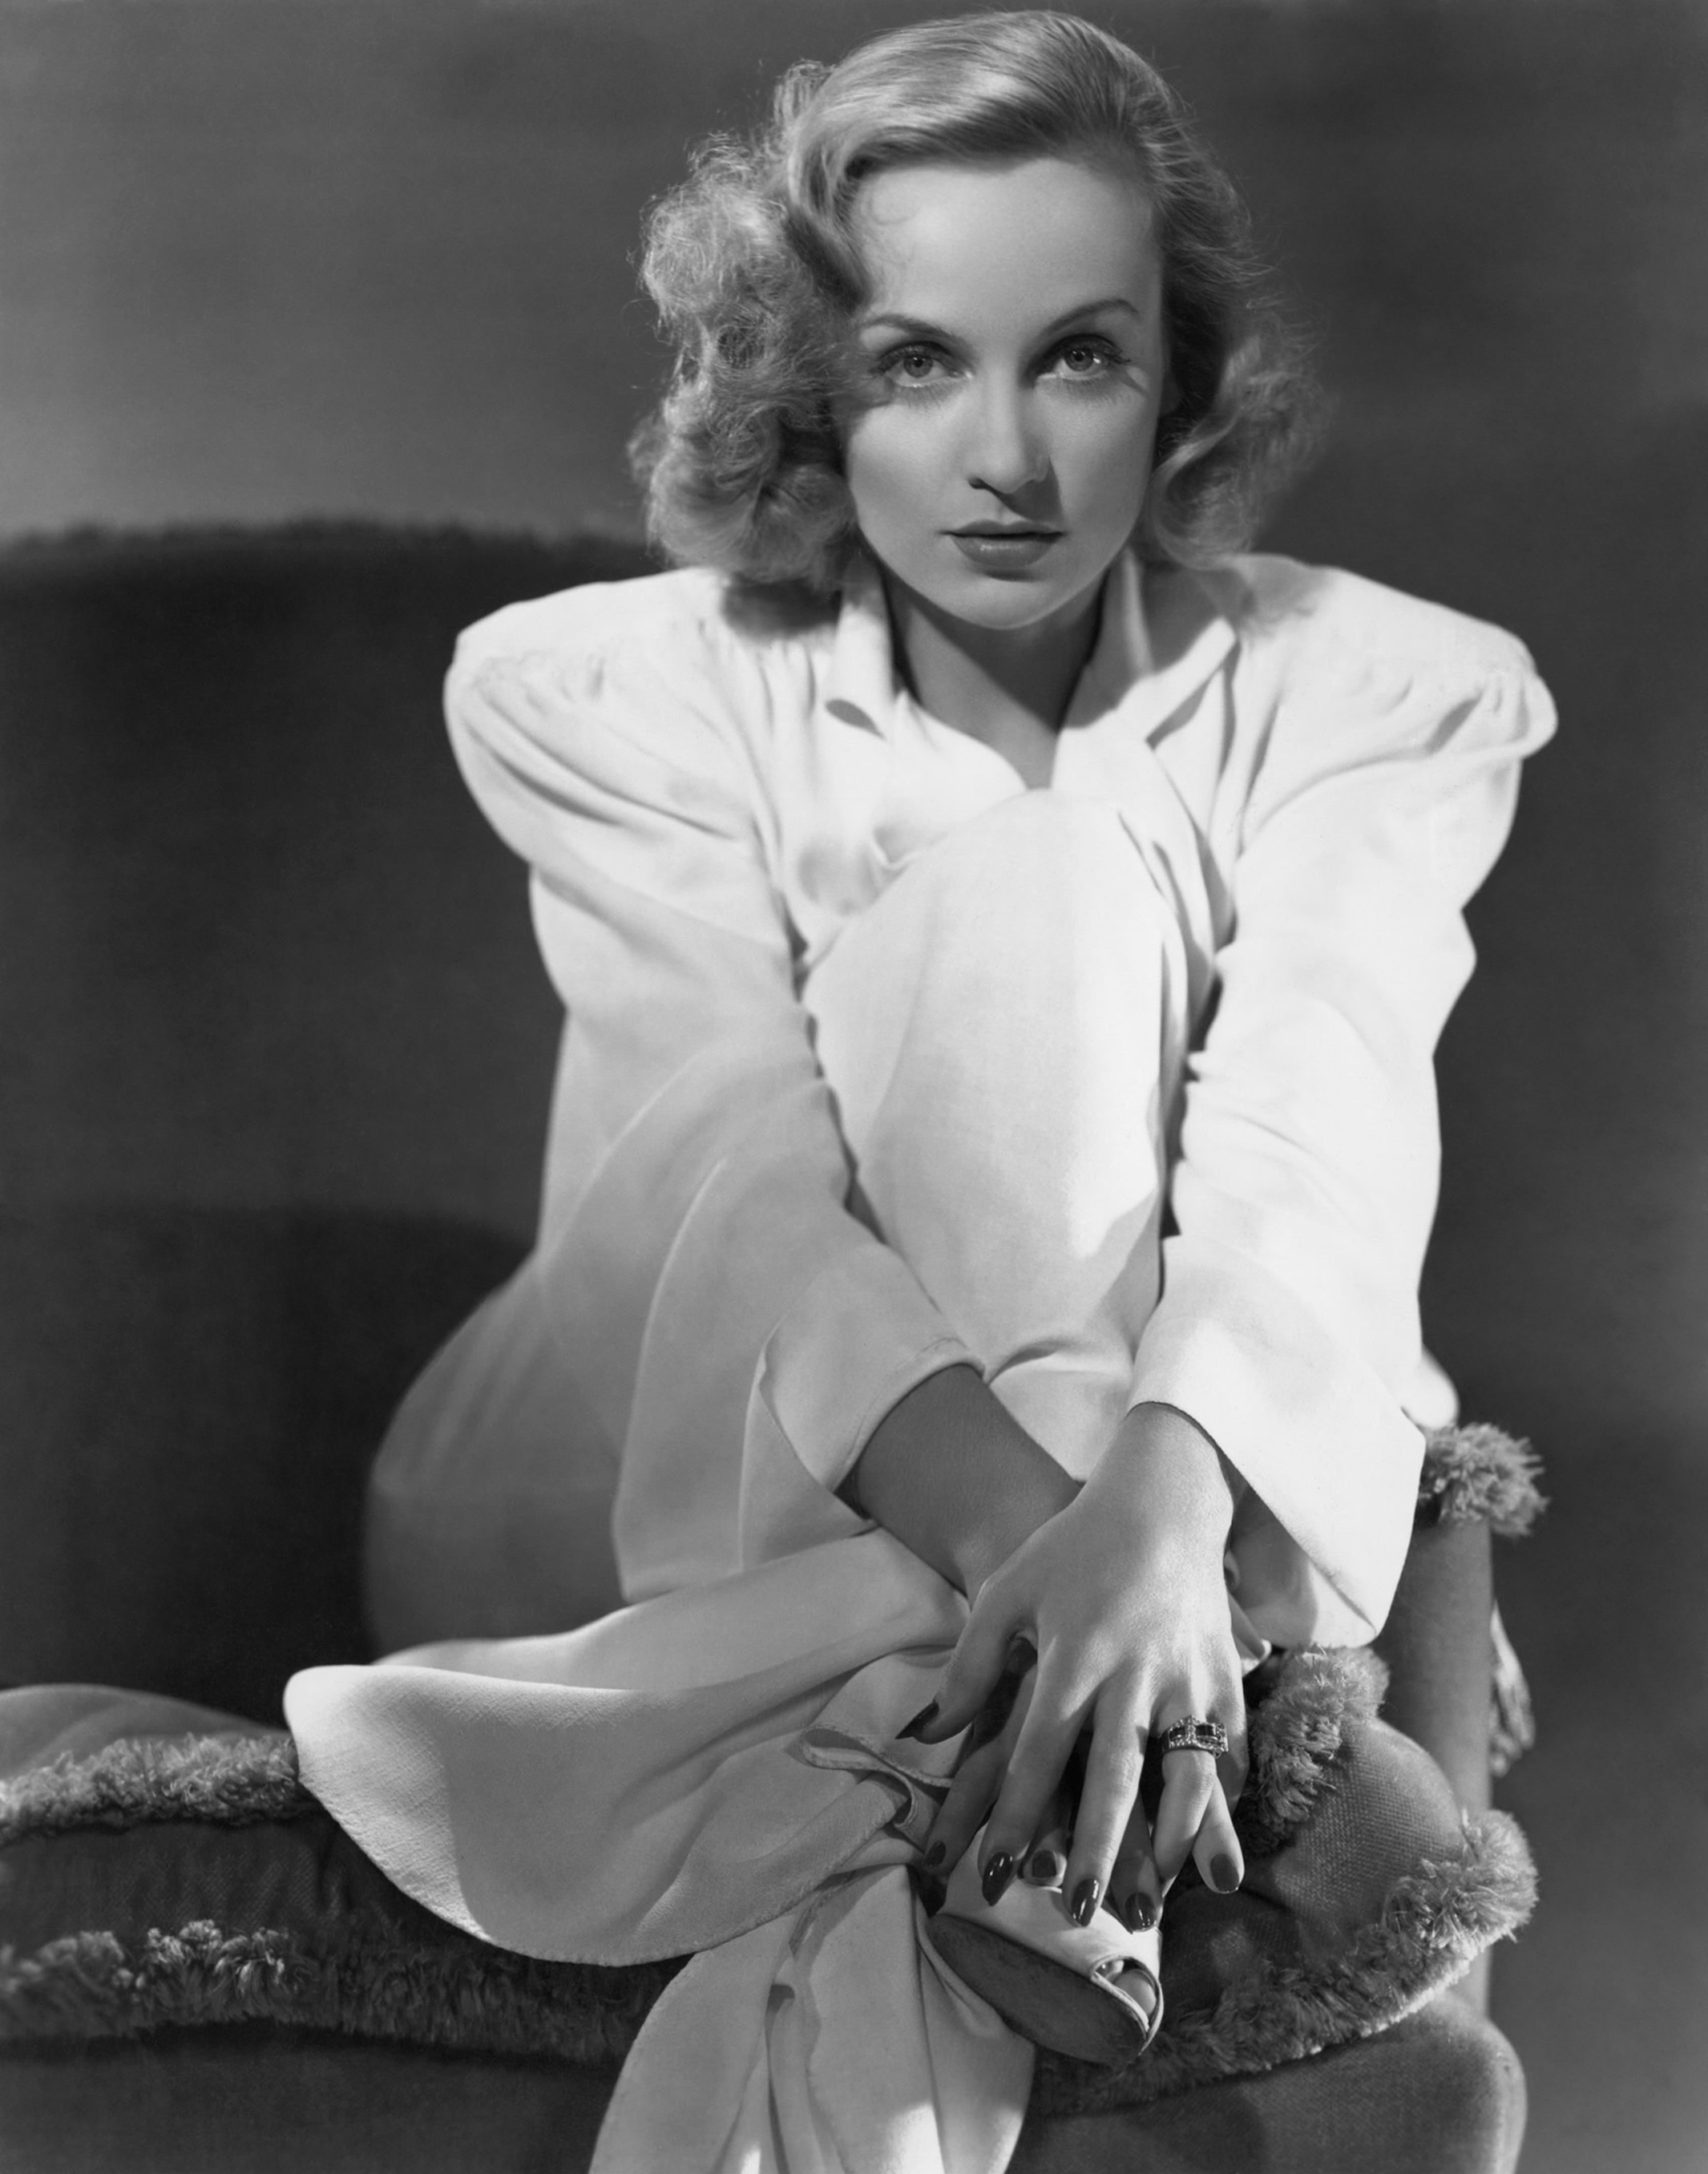 Carole Lombard in Mr & Mrs Smith directed by Alfred Hitchcock, 1941